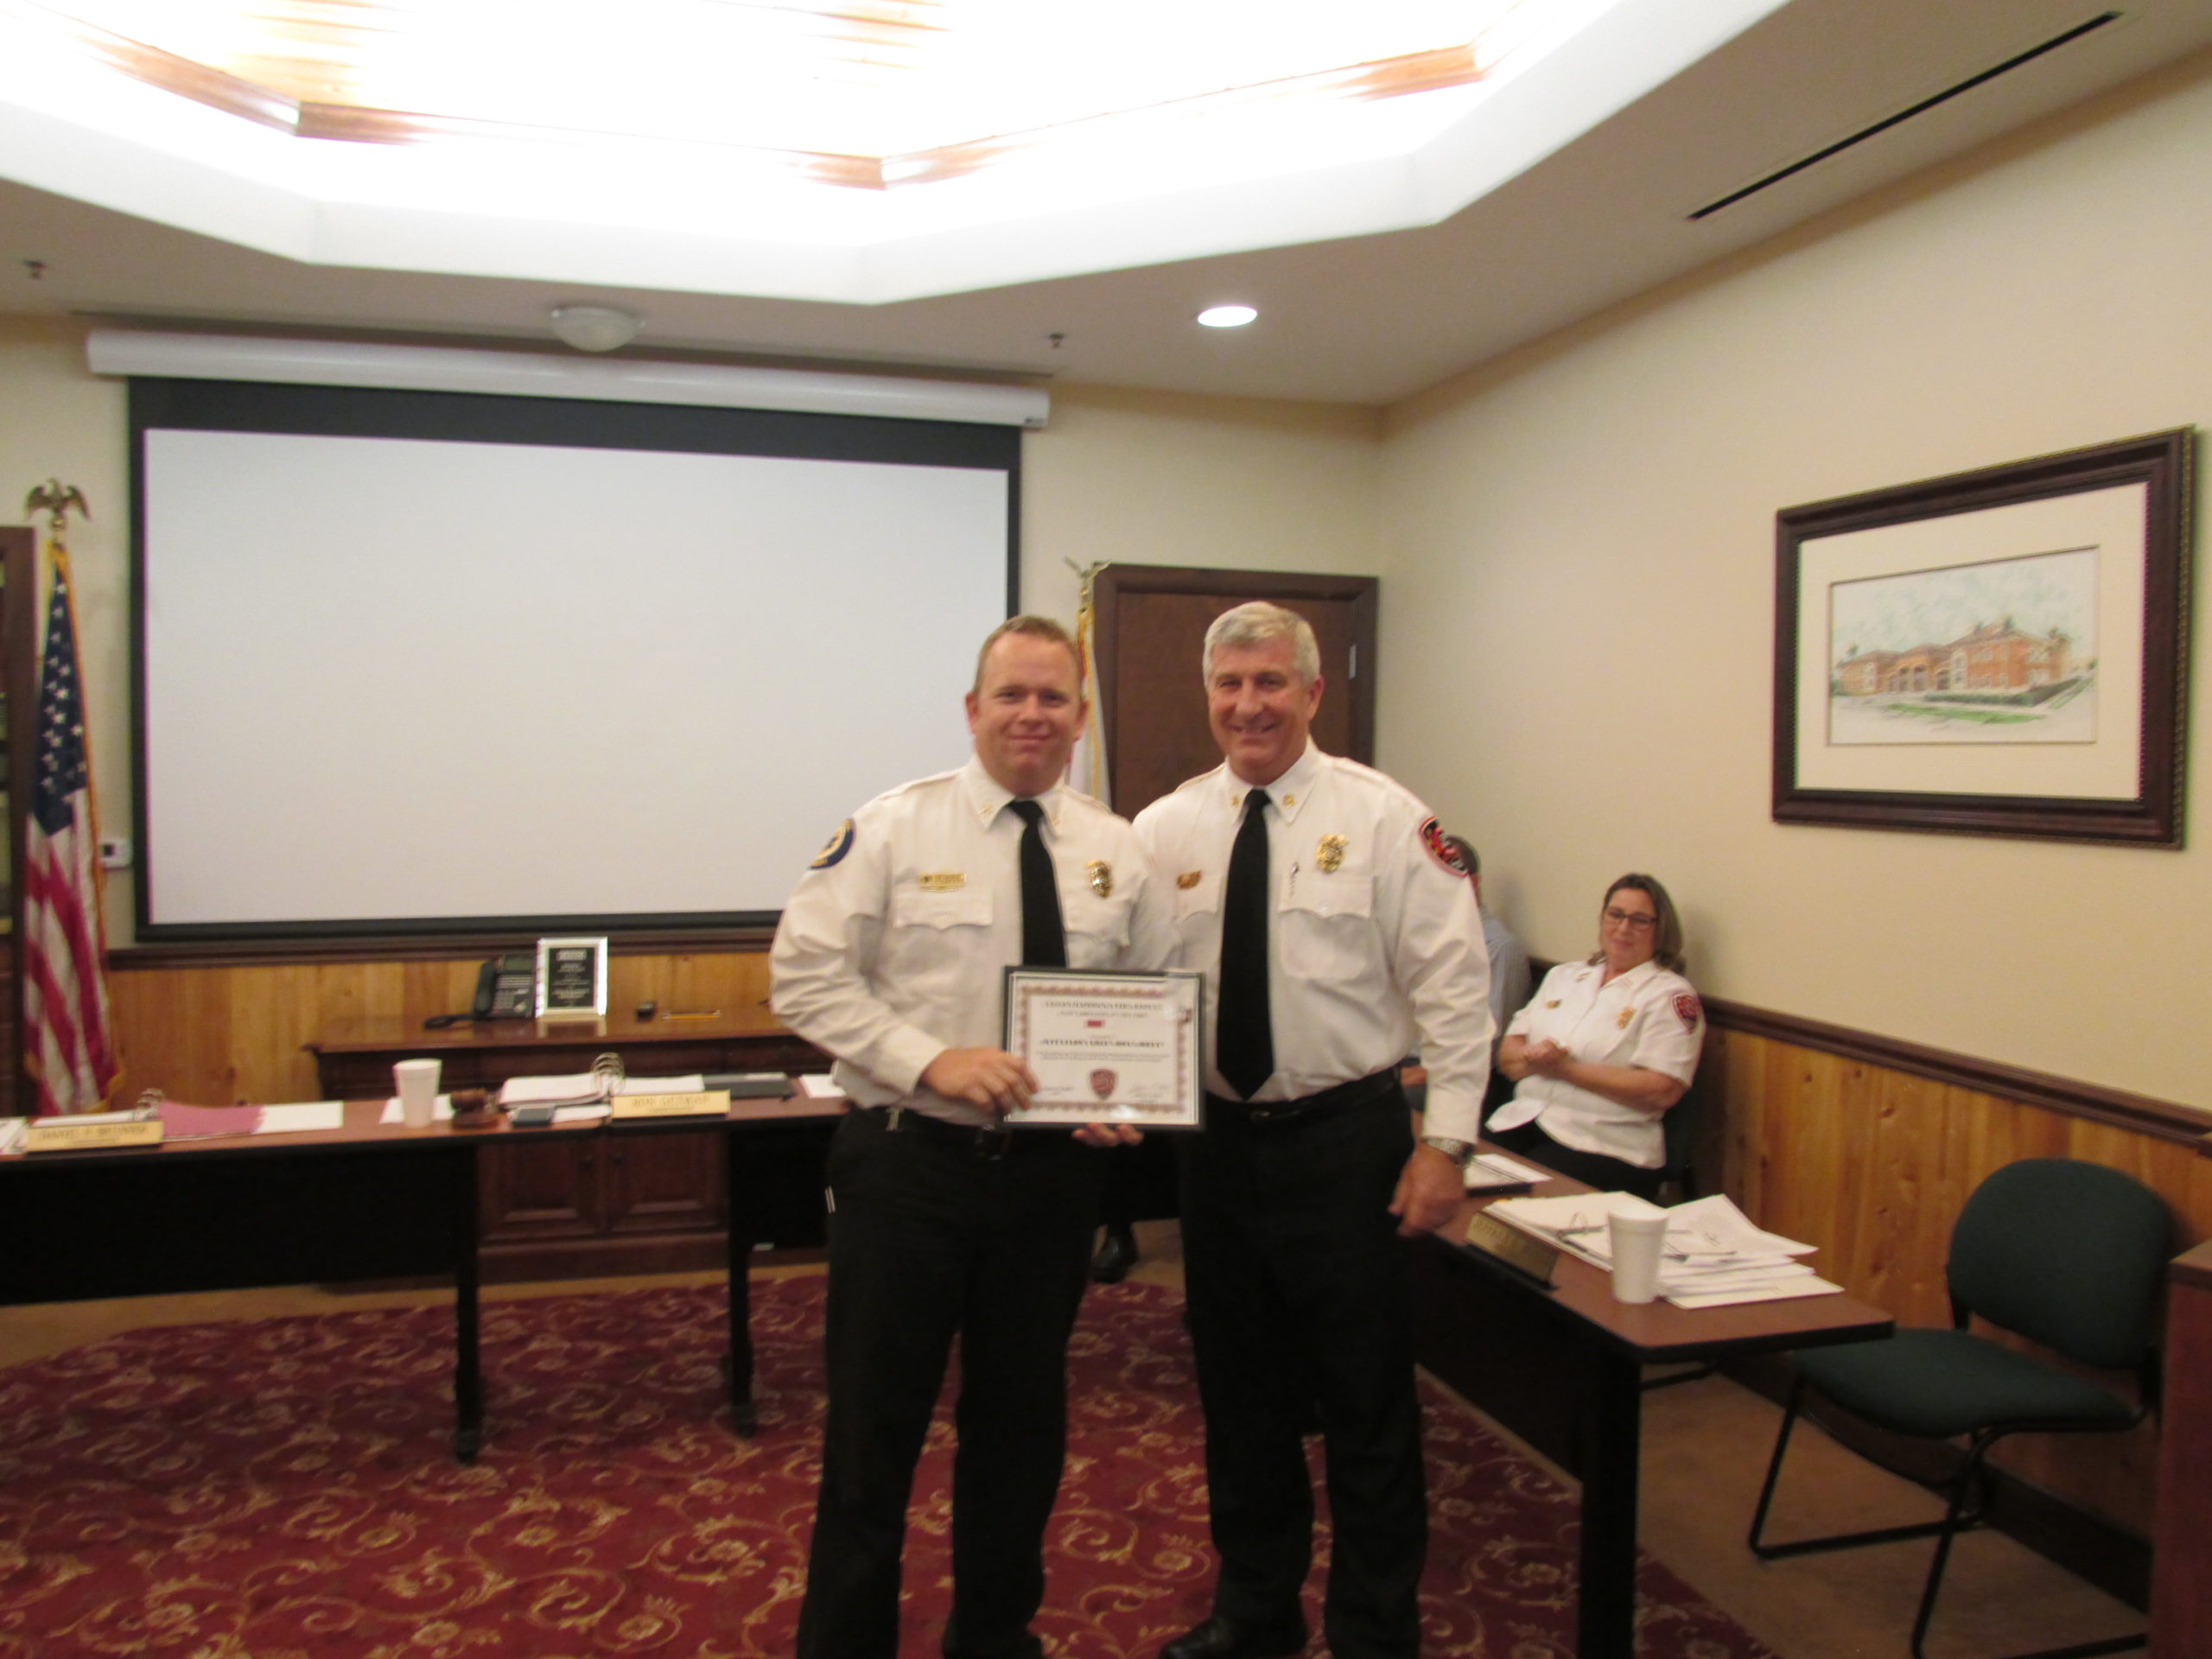 battalion chief doug brett receiving the staff employee of the year award from chief hoyle